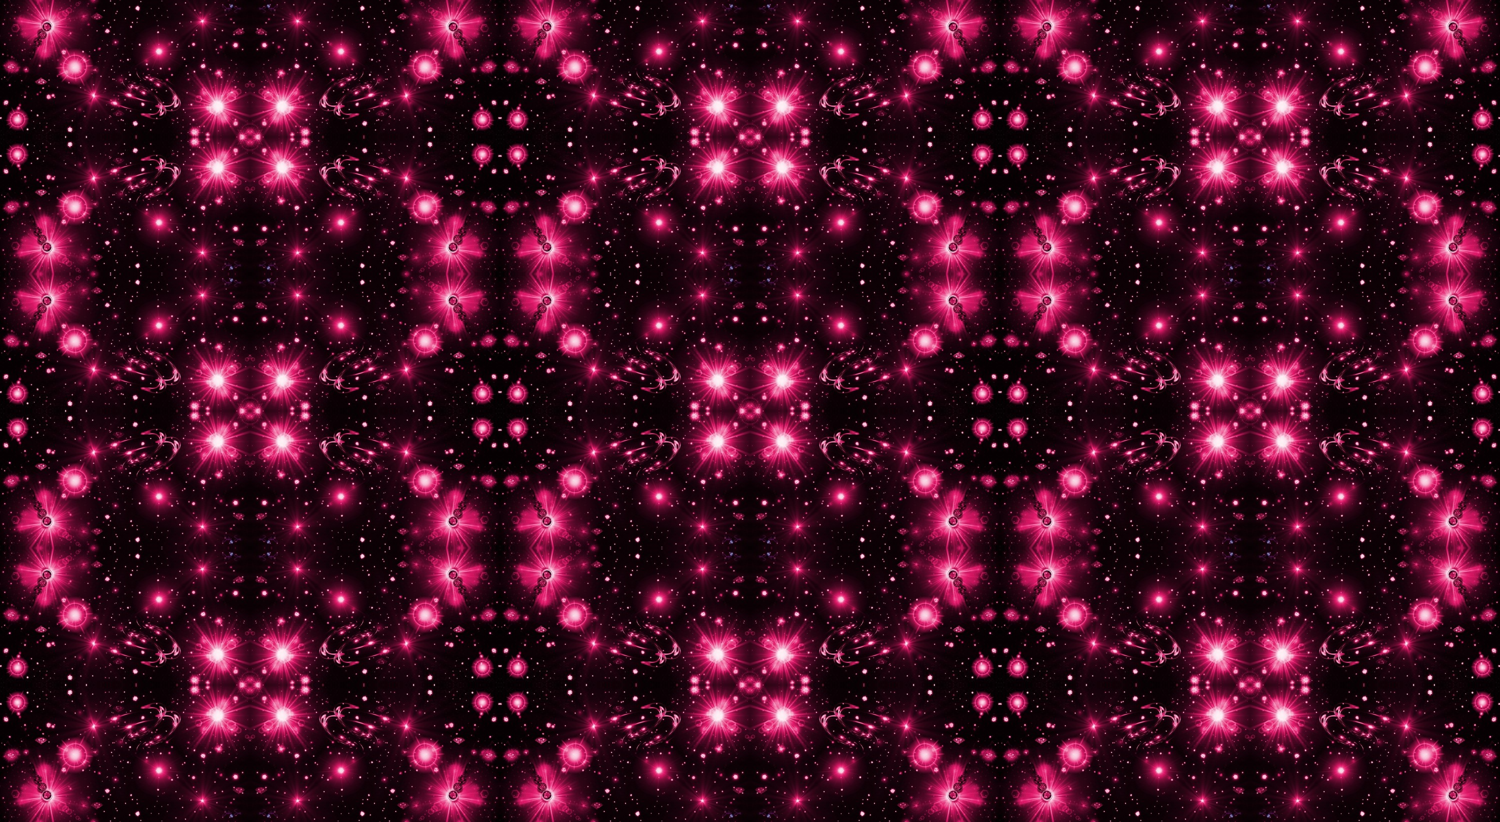 Hot Pink And Black Wallpaper Designs 5 hot pink and black starry 1500x822